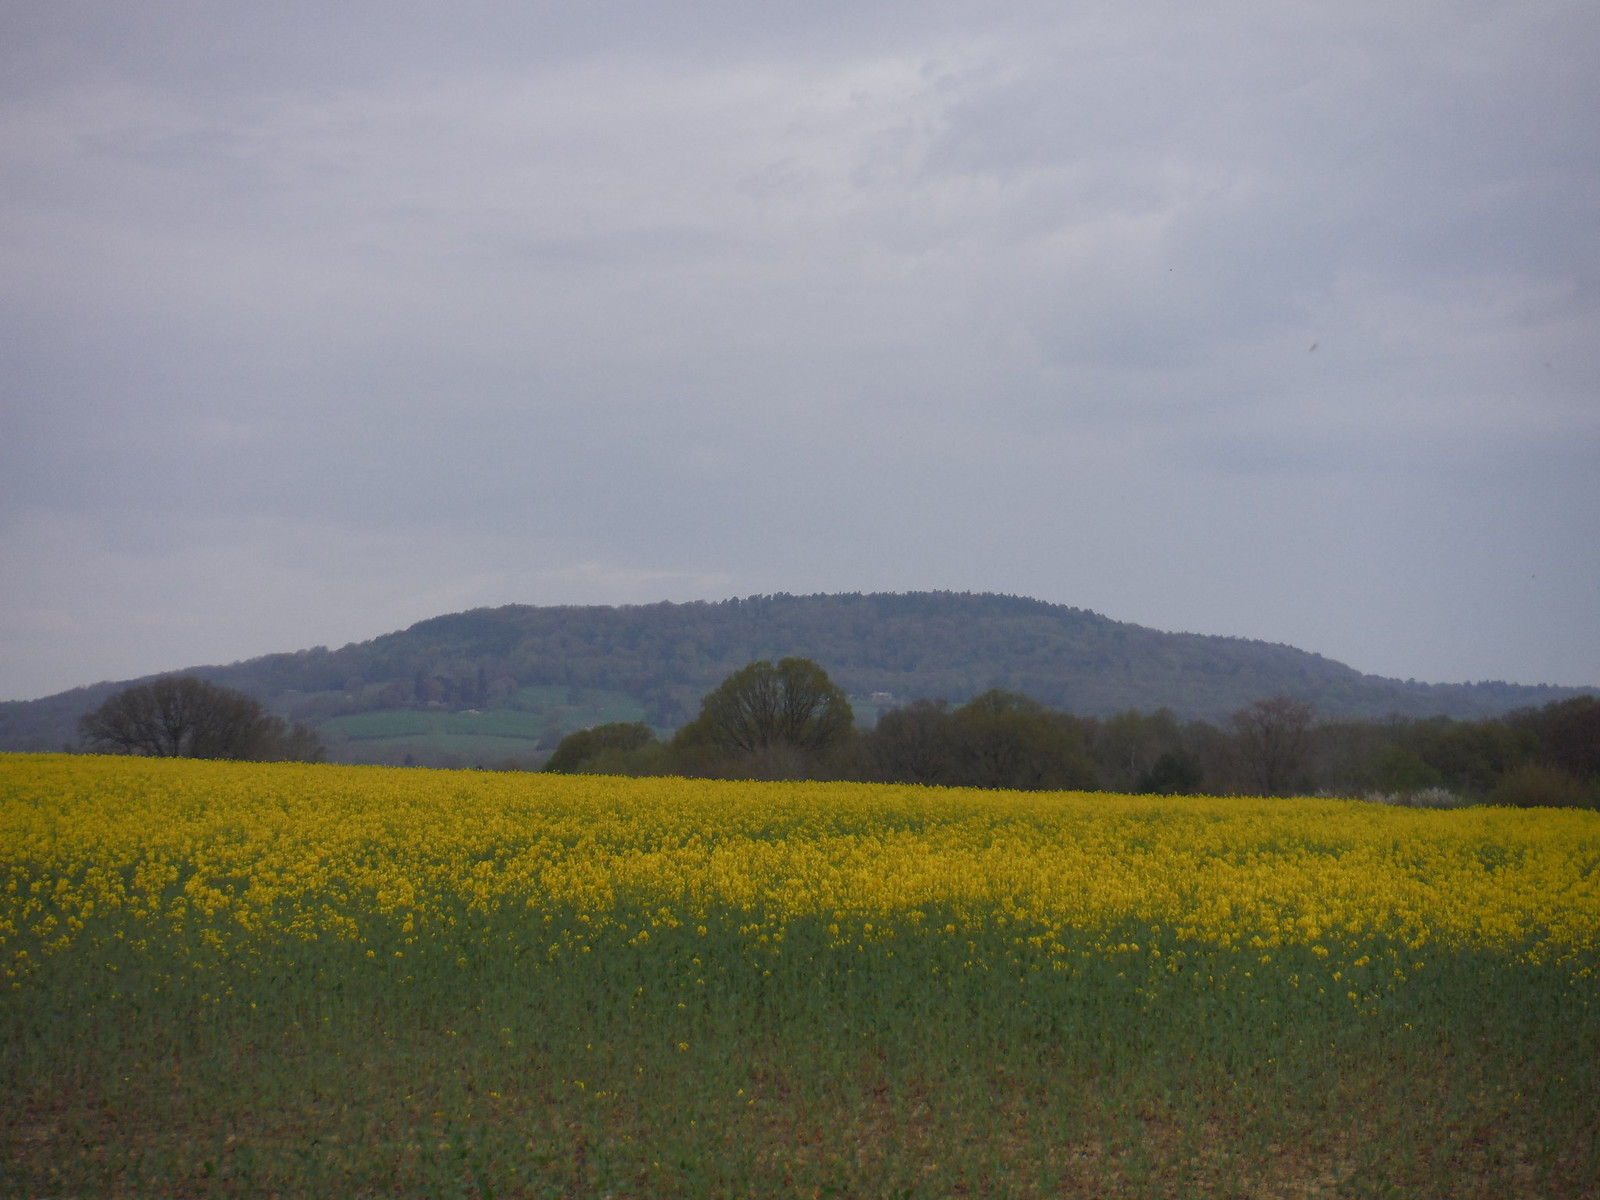 Black Down across Rape Oil Seed field SWC Walk 48 Haslemere to Midhurst (via Lurgashall or Lickfold)